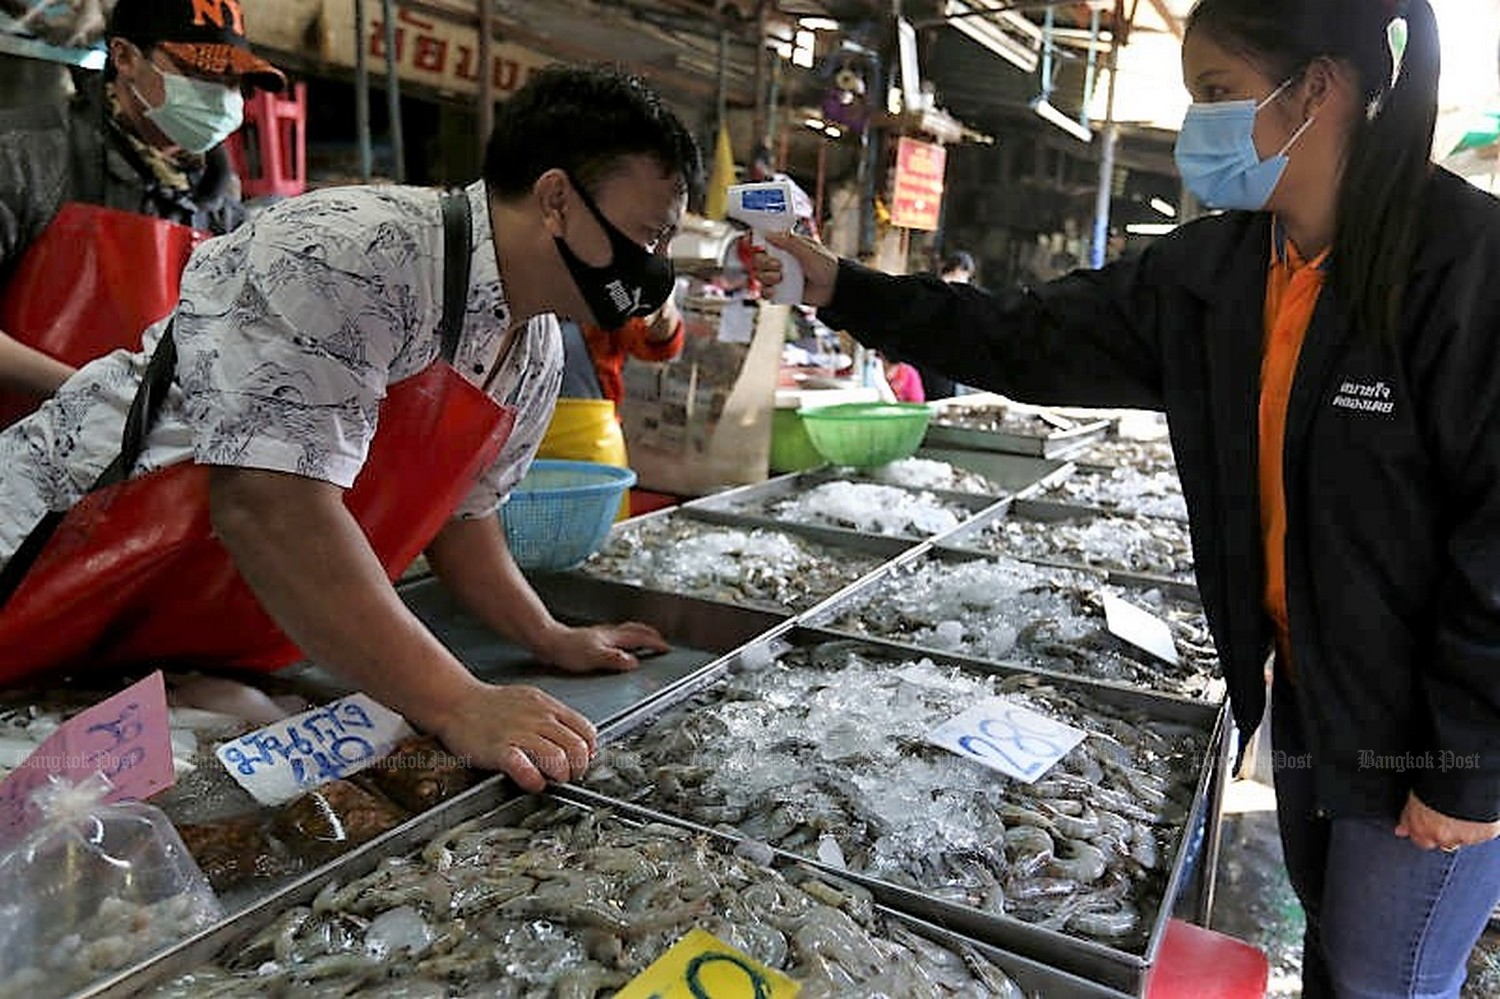 An official from Klong Toey District Office checks the temperature of a seafood vendor at Klong Toey market.